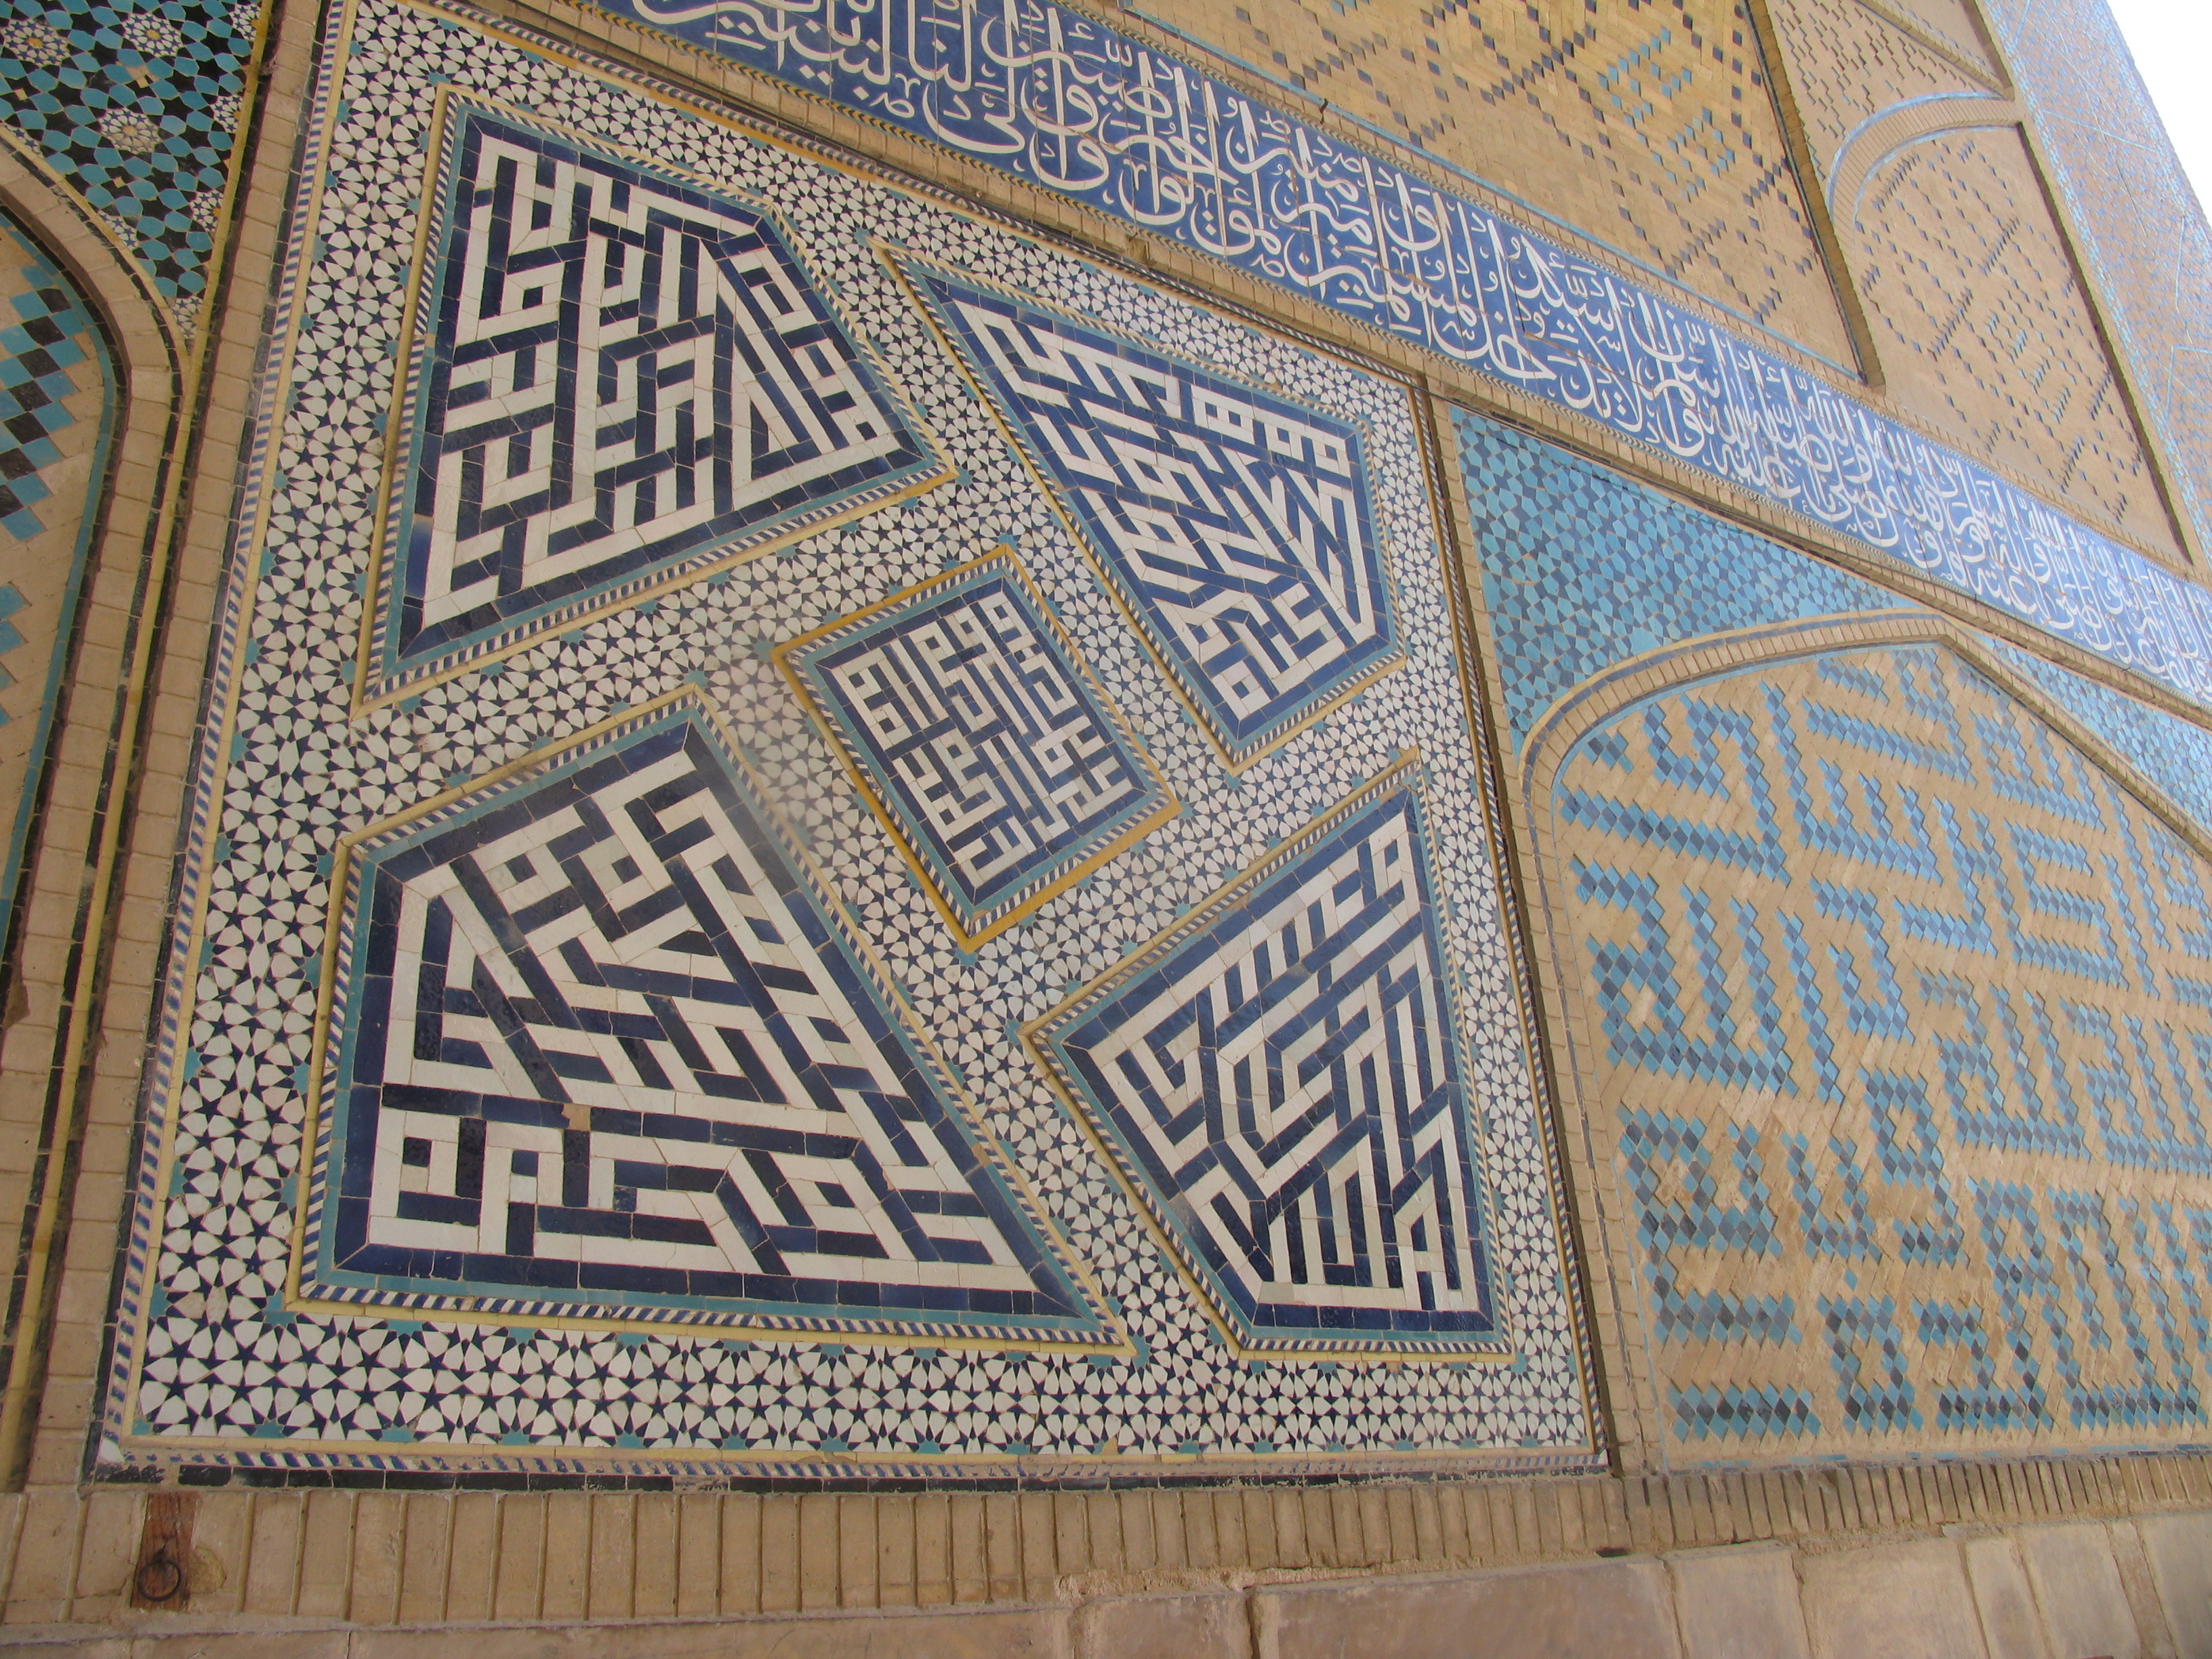 an analysis of the techniques and motifs in islamic art and architecture Exploring themes of islamic art and architecture at sharjah festival  and motifs to create an unambiguous  the carpet represents a metaphoric analysis of.